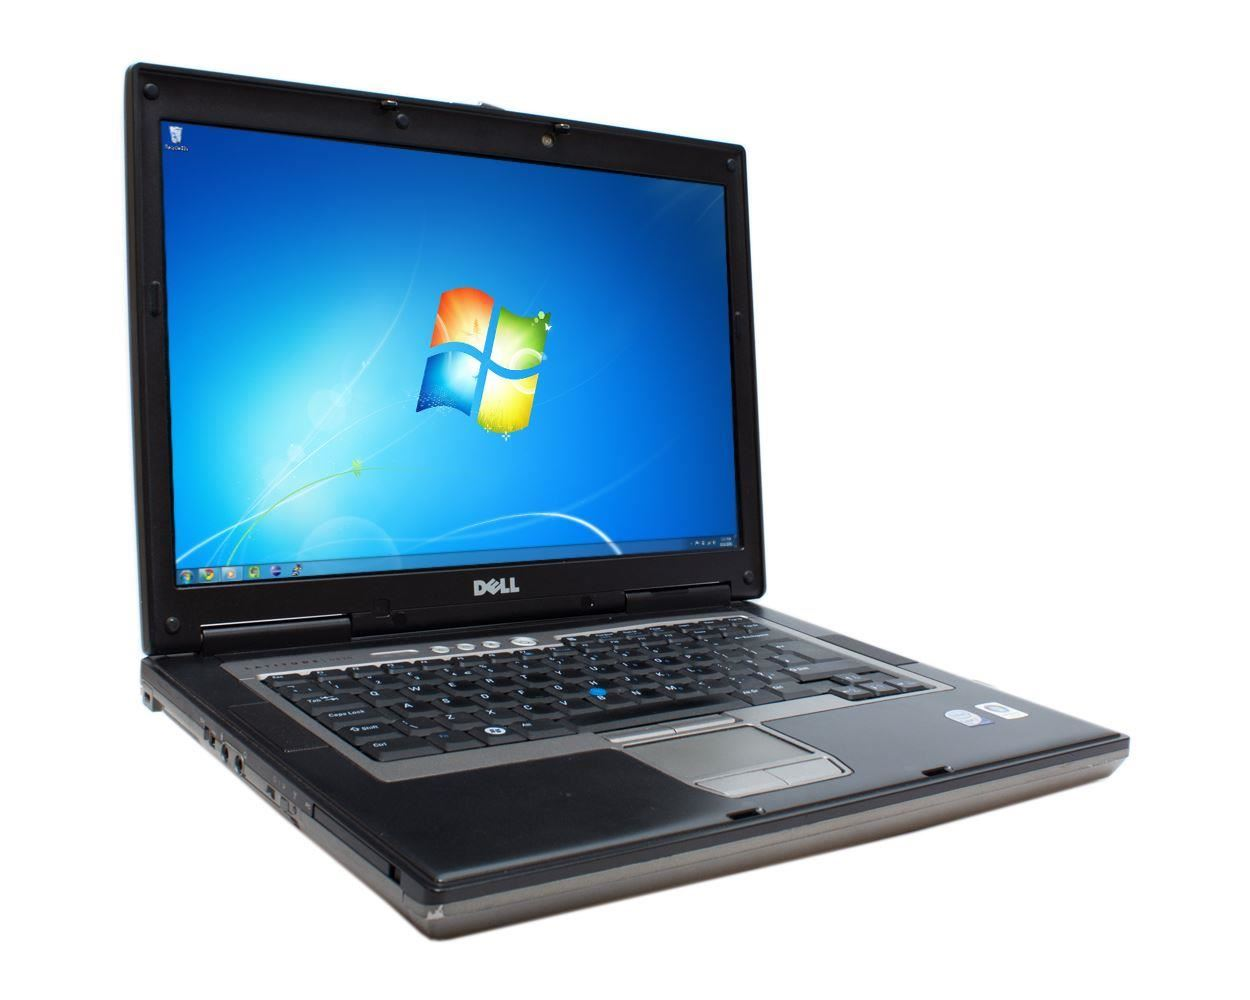 Find great deals on eBay for dell laptop uk. Shop with confidence.